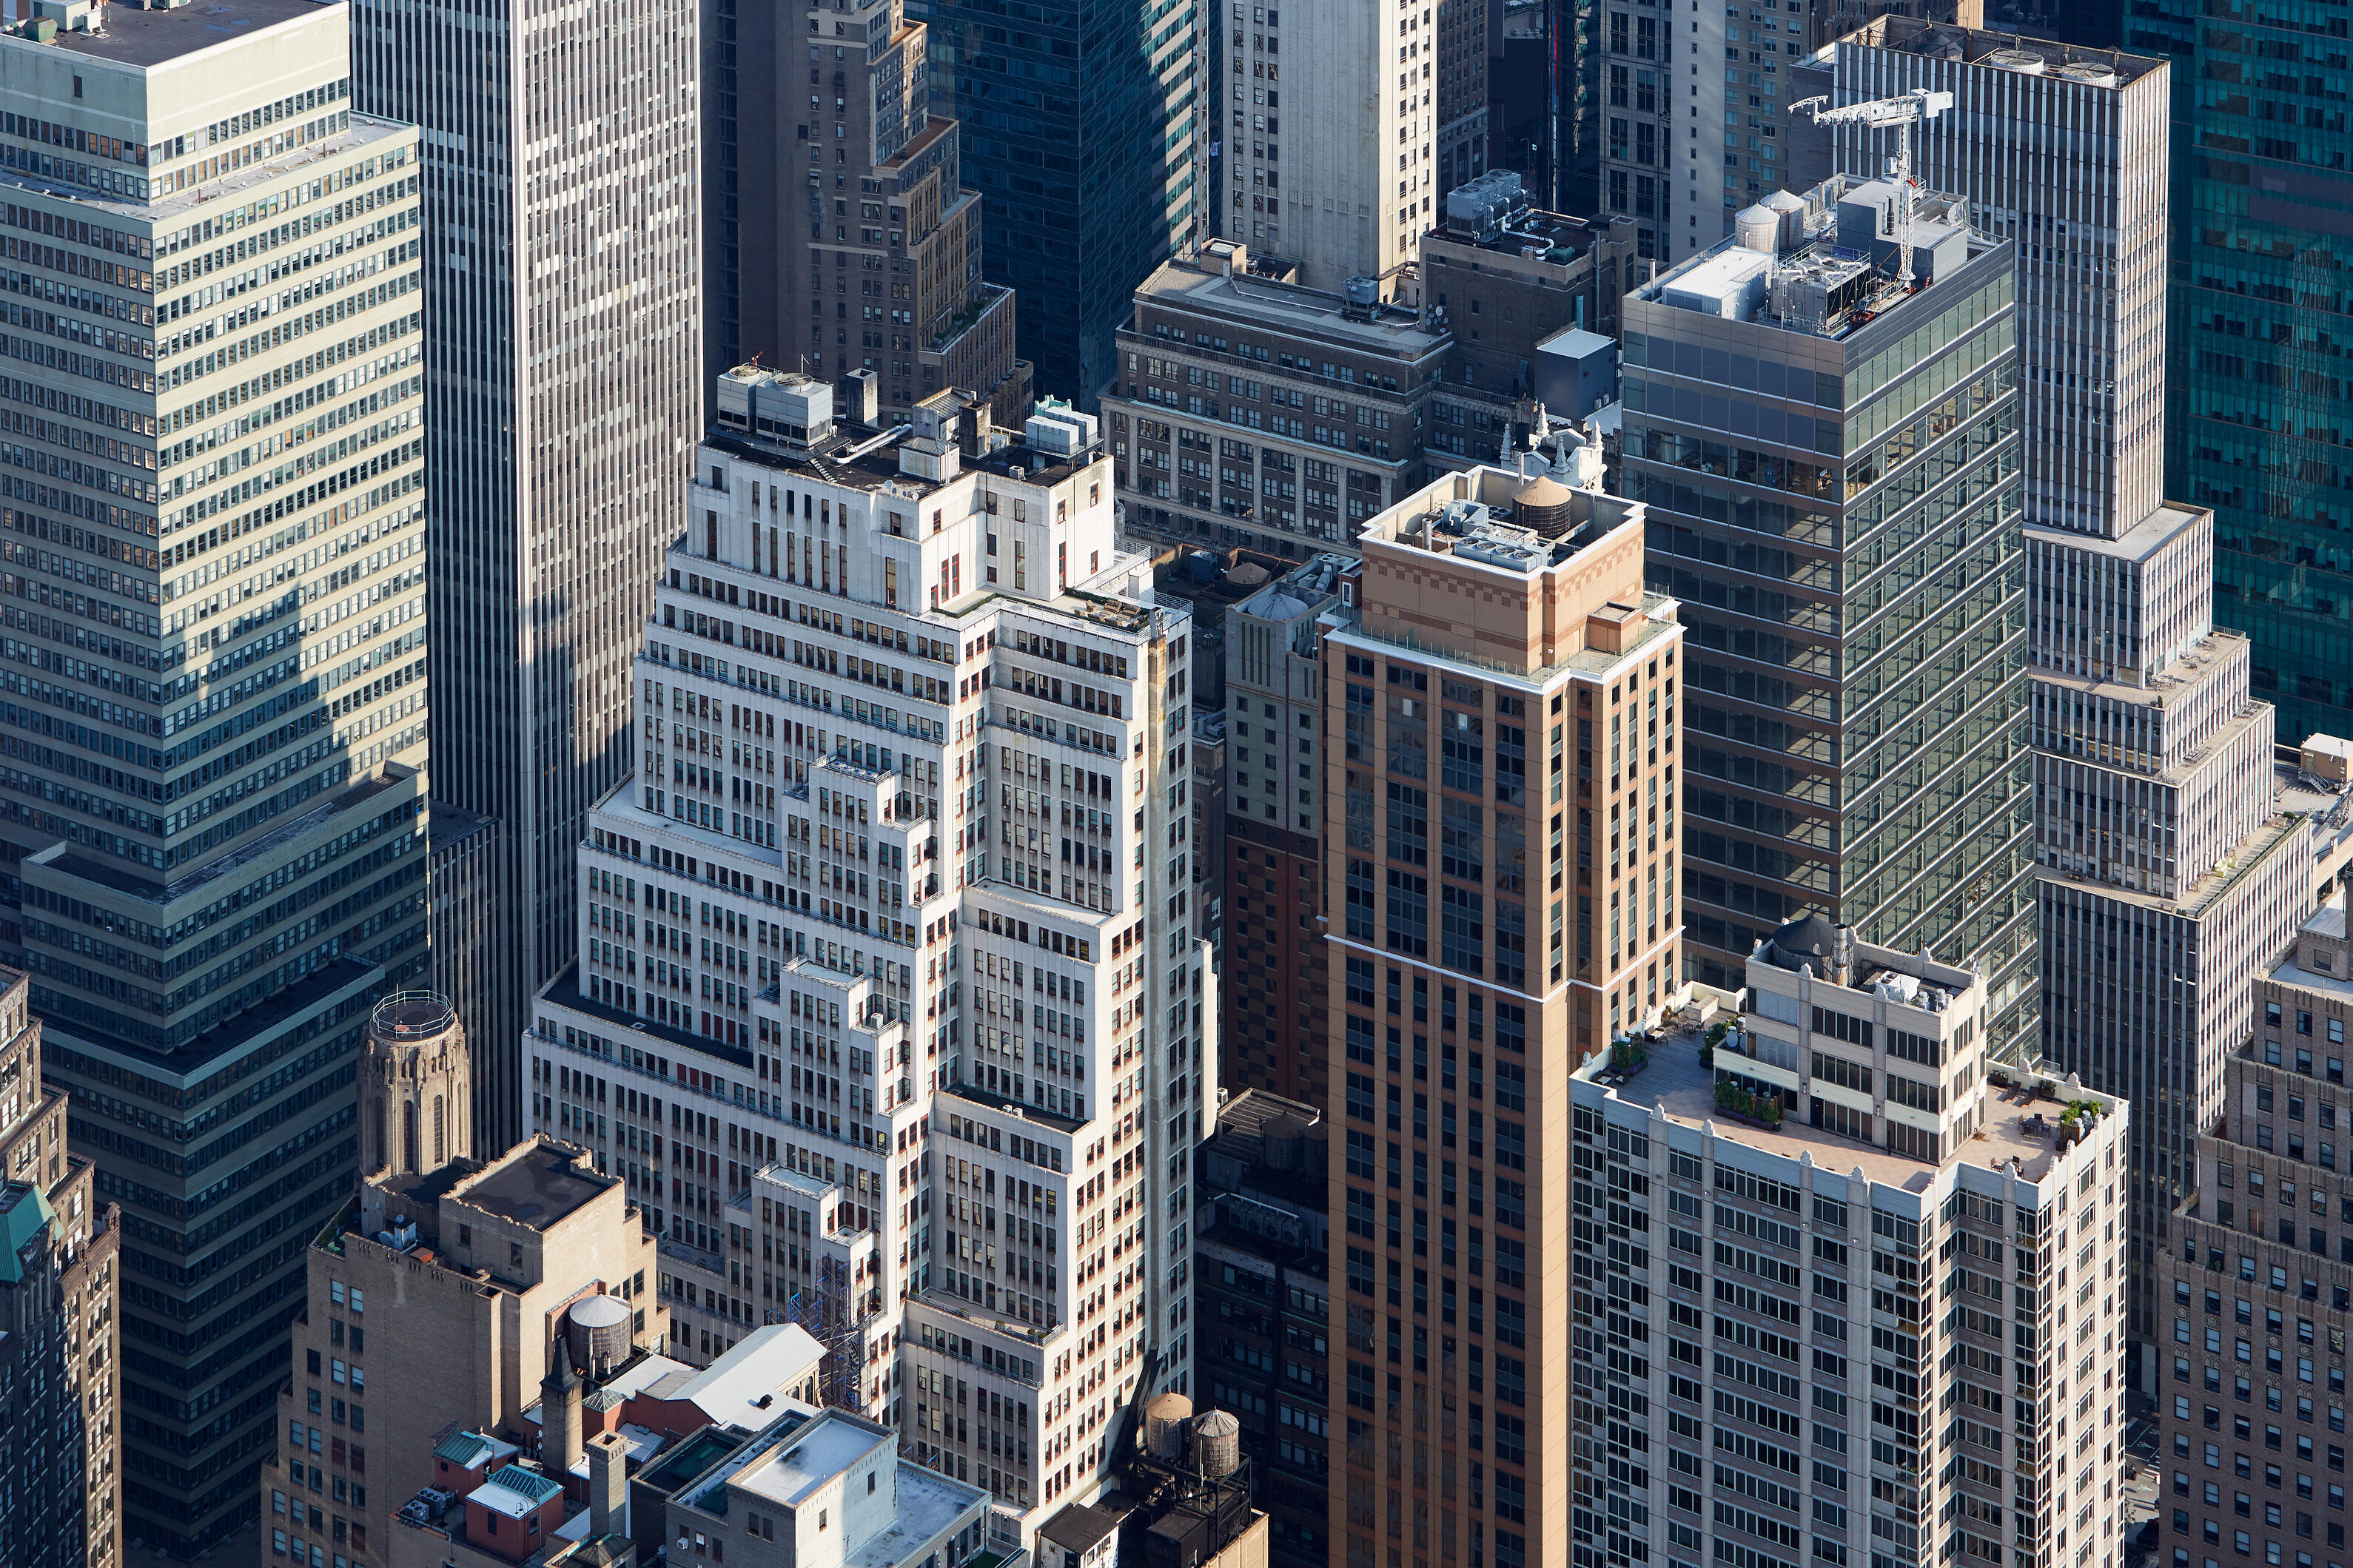 new-york-city-manhattan-skyscrapers-aerial-view-in-PYQ4G2C-1